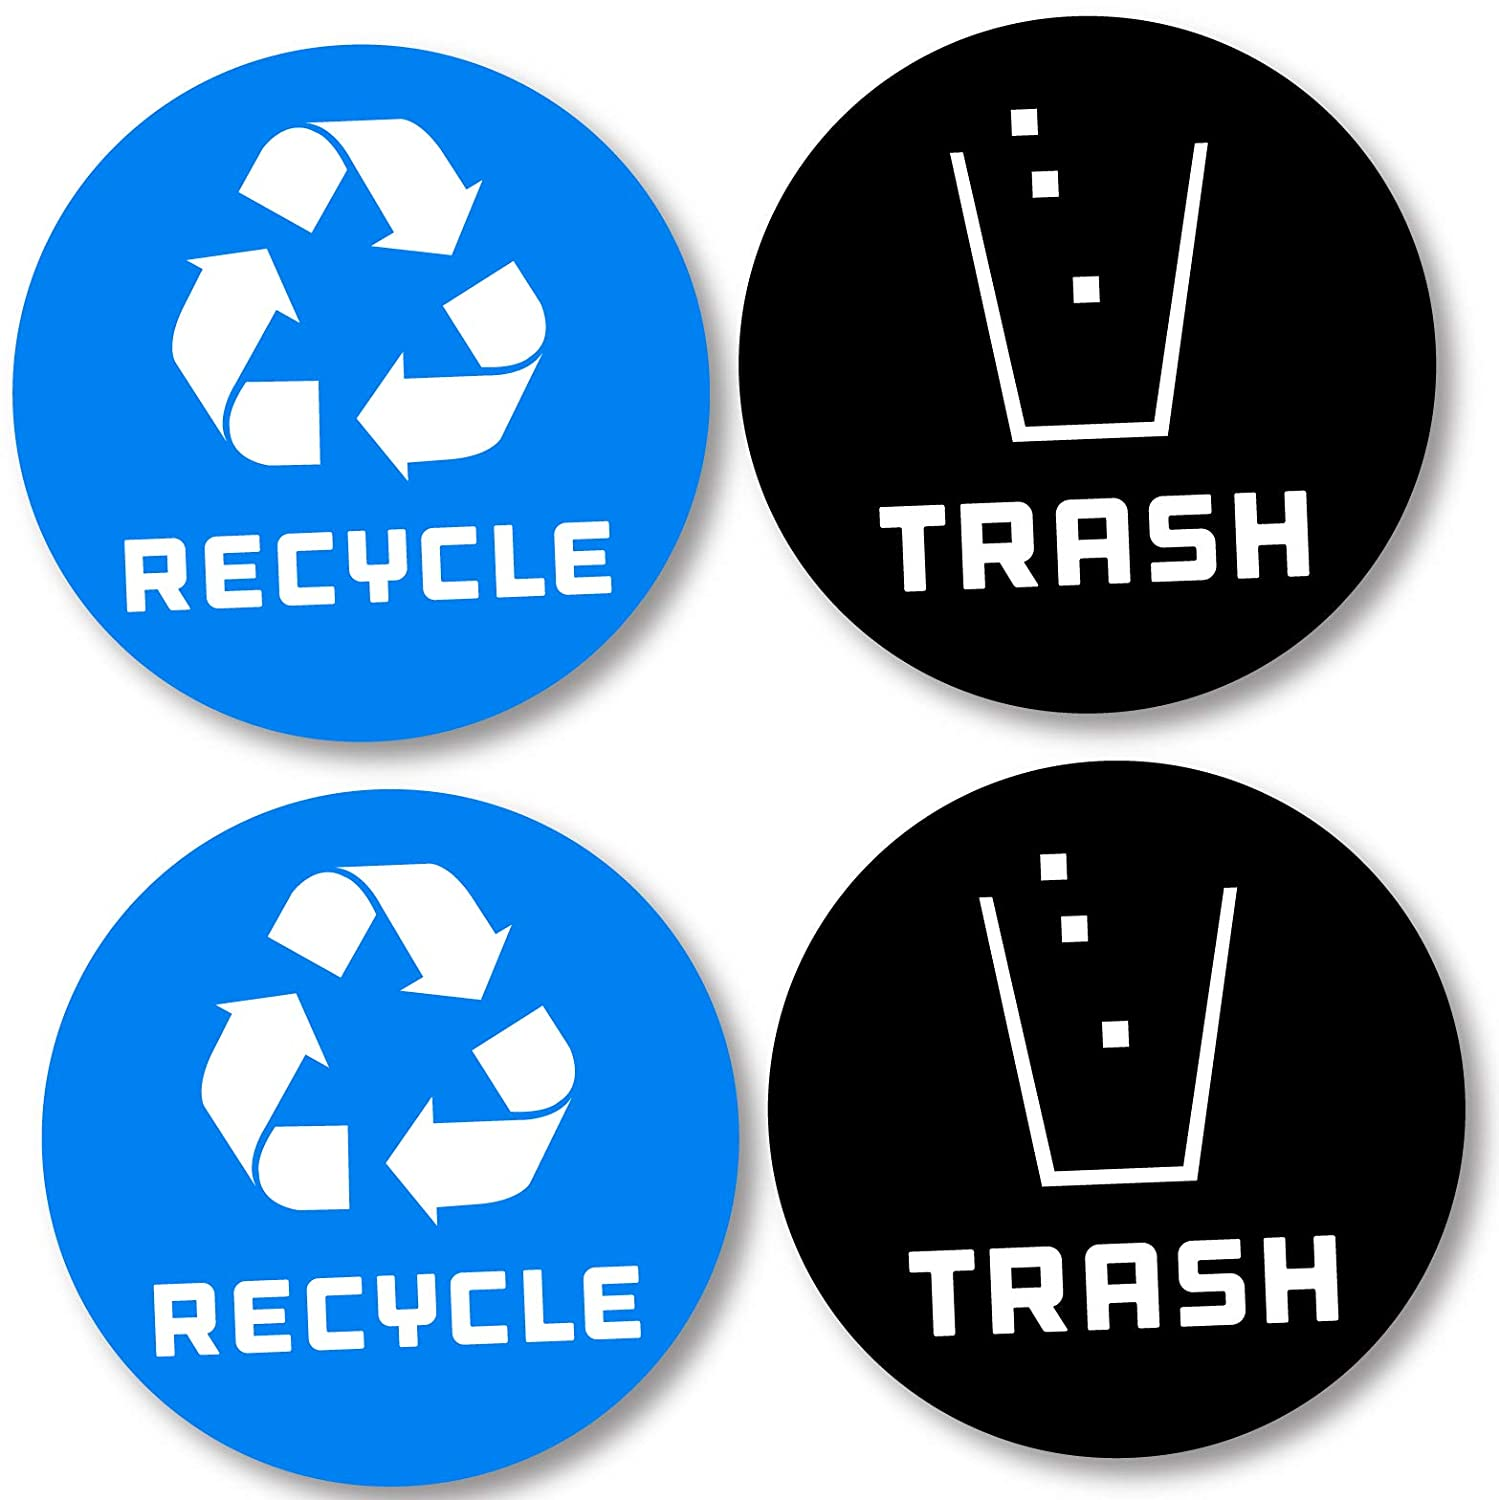 Recycle and trash bin logo stickers 4 pack blue 4in x 4in 7mil laminated organize trash for metal or plastic garbage cans containers and bins